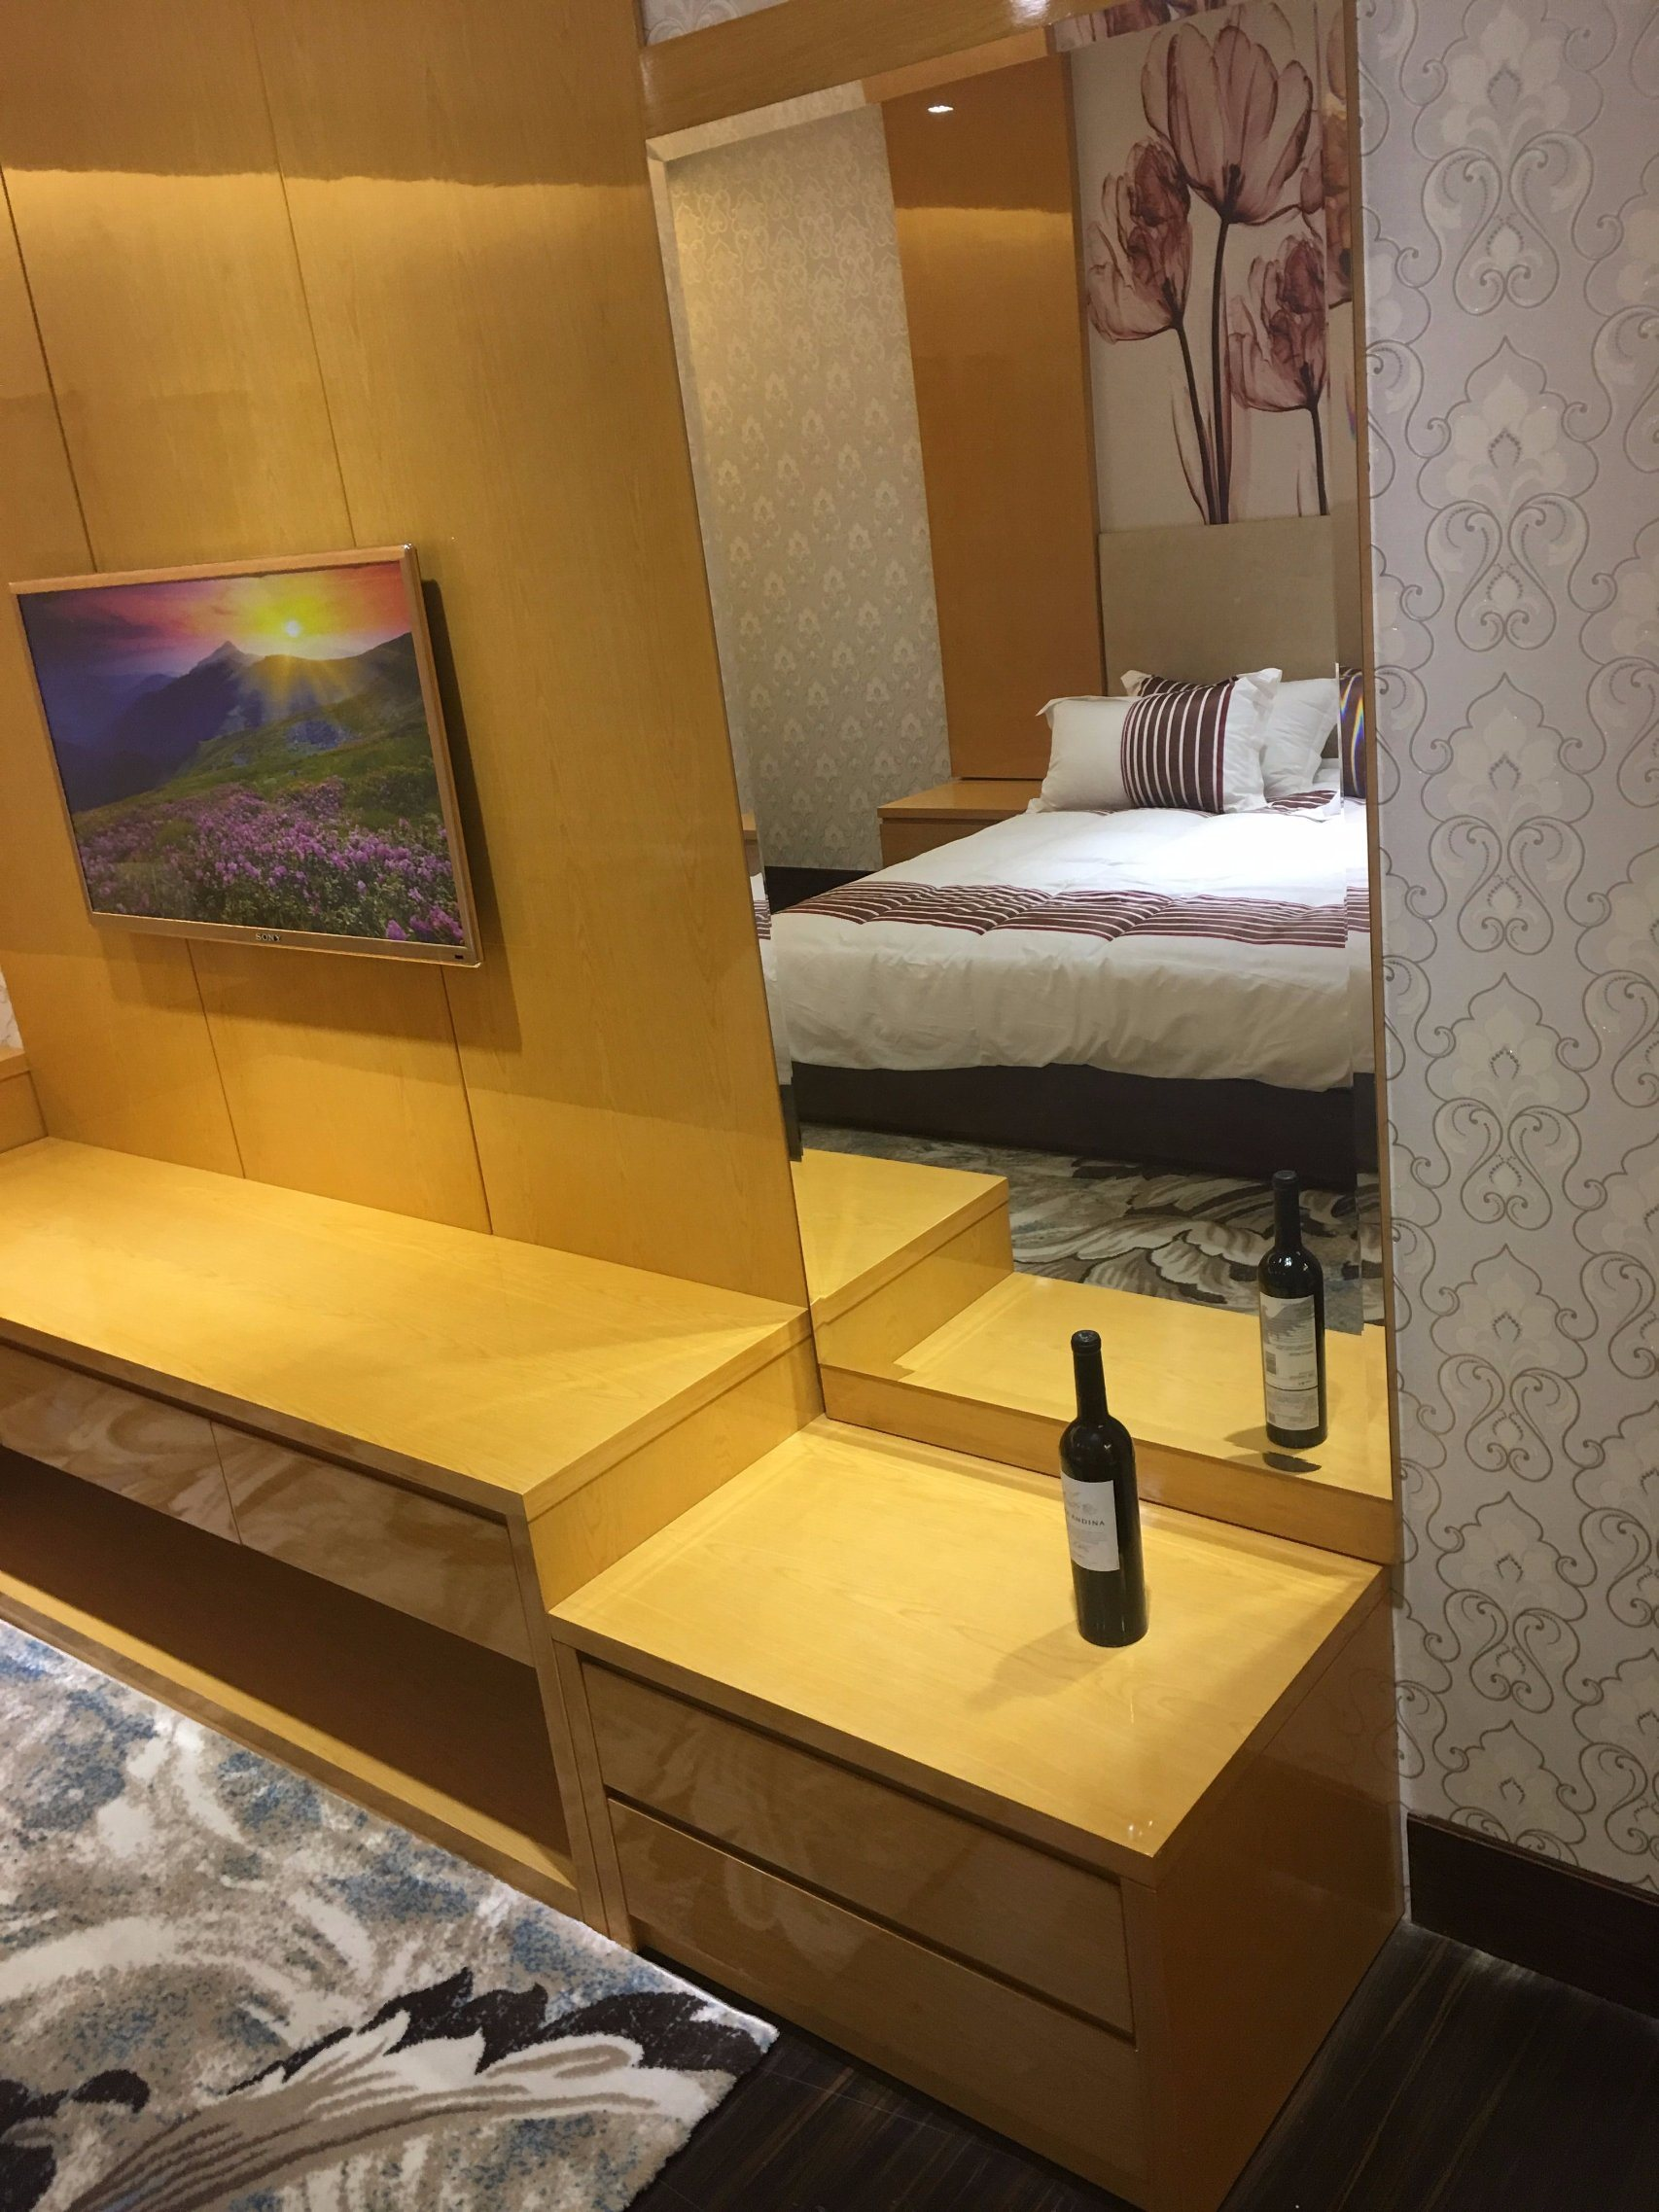 Hotel Bedroom Furniture/Luxury King Size Bedroom Furniture/Standard Hotel King Size Bedroom Suite/Kingsize Hospitality Guest Room Furniture (NCHB-00316) pictures & photos